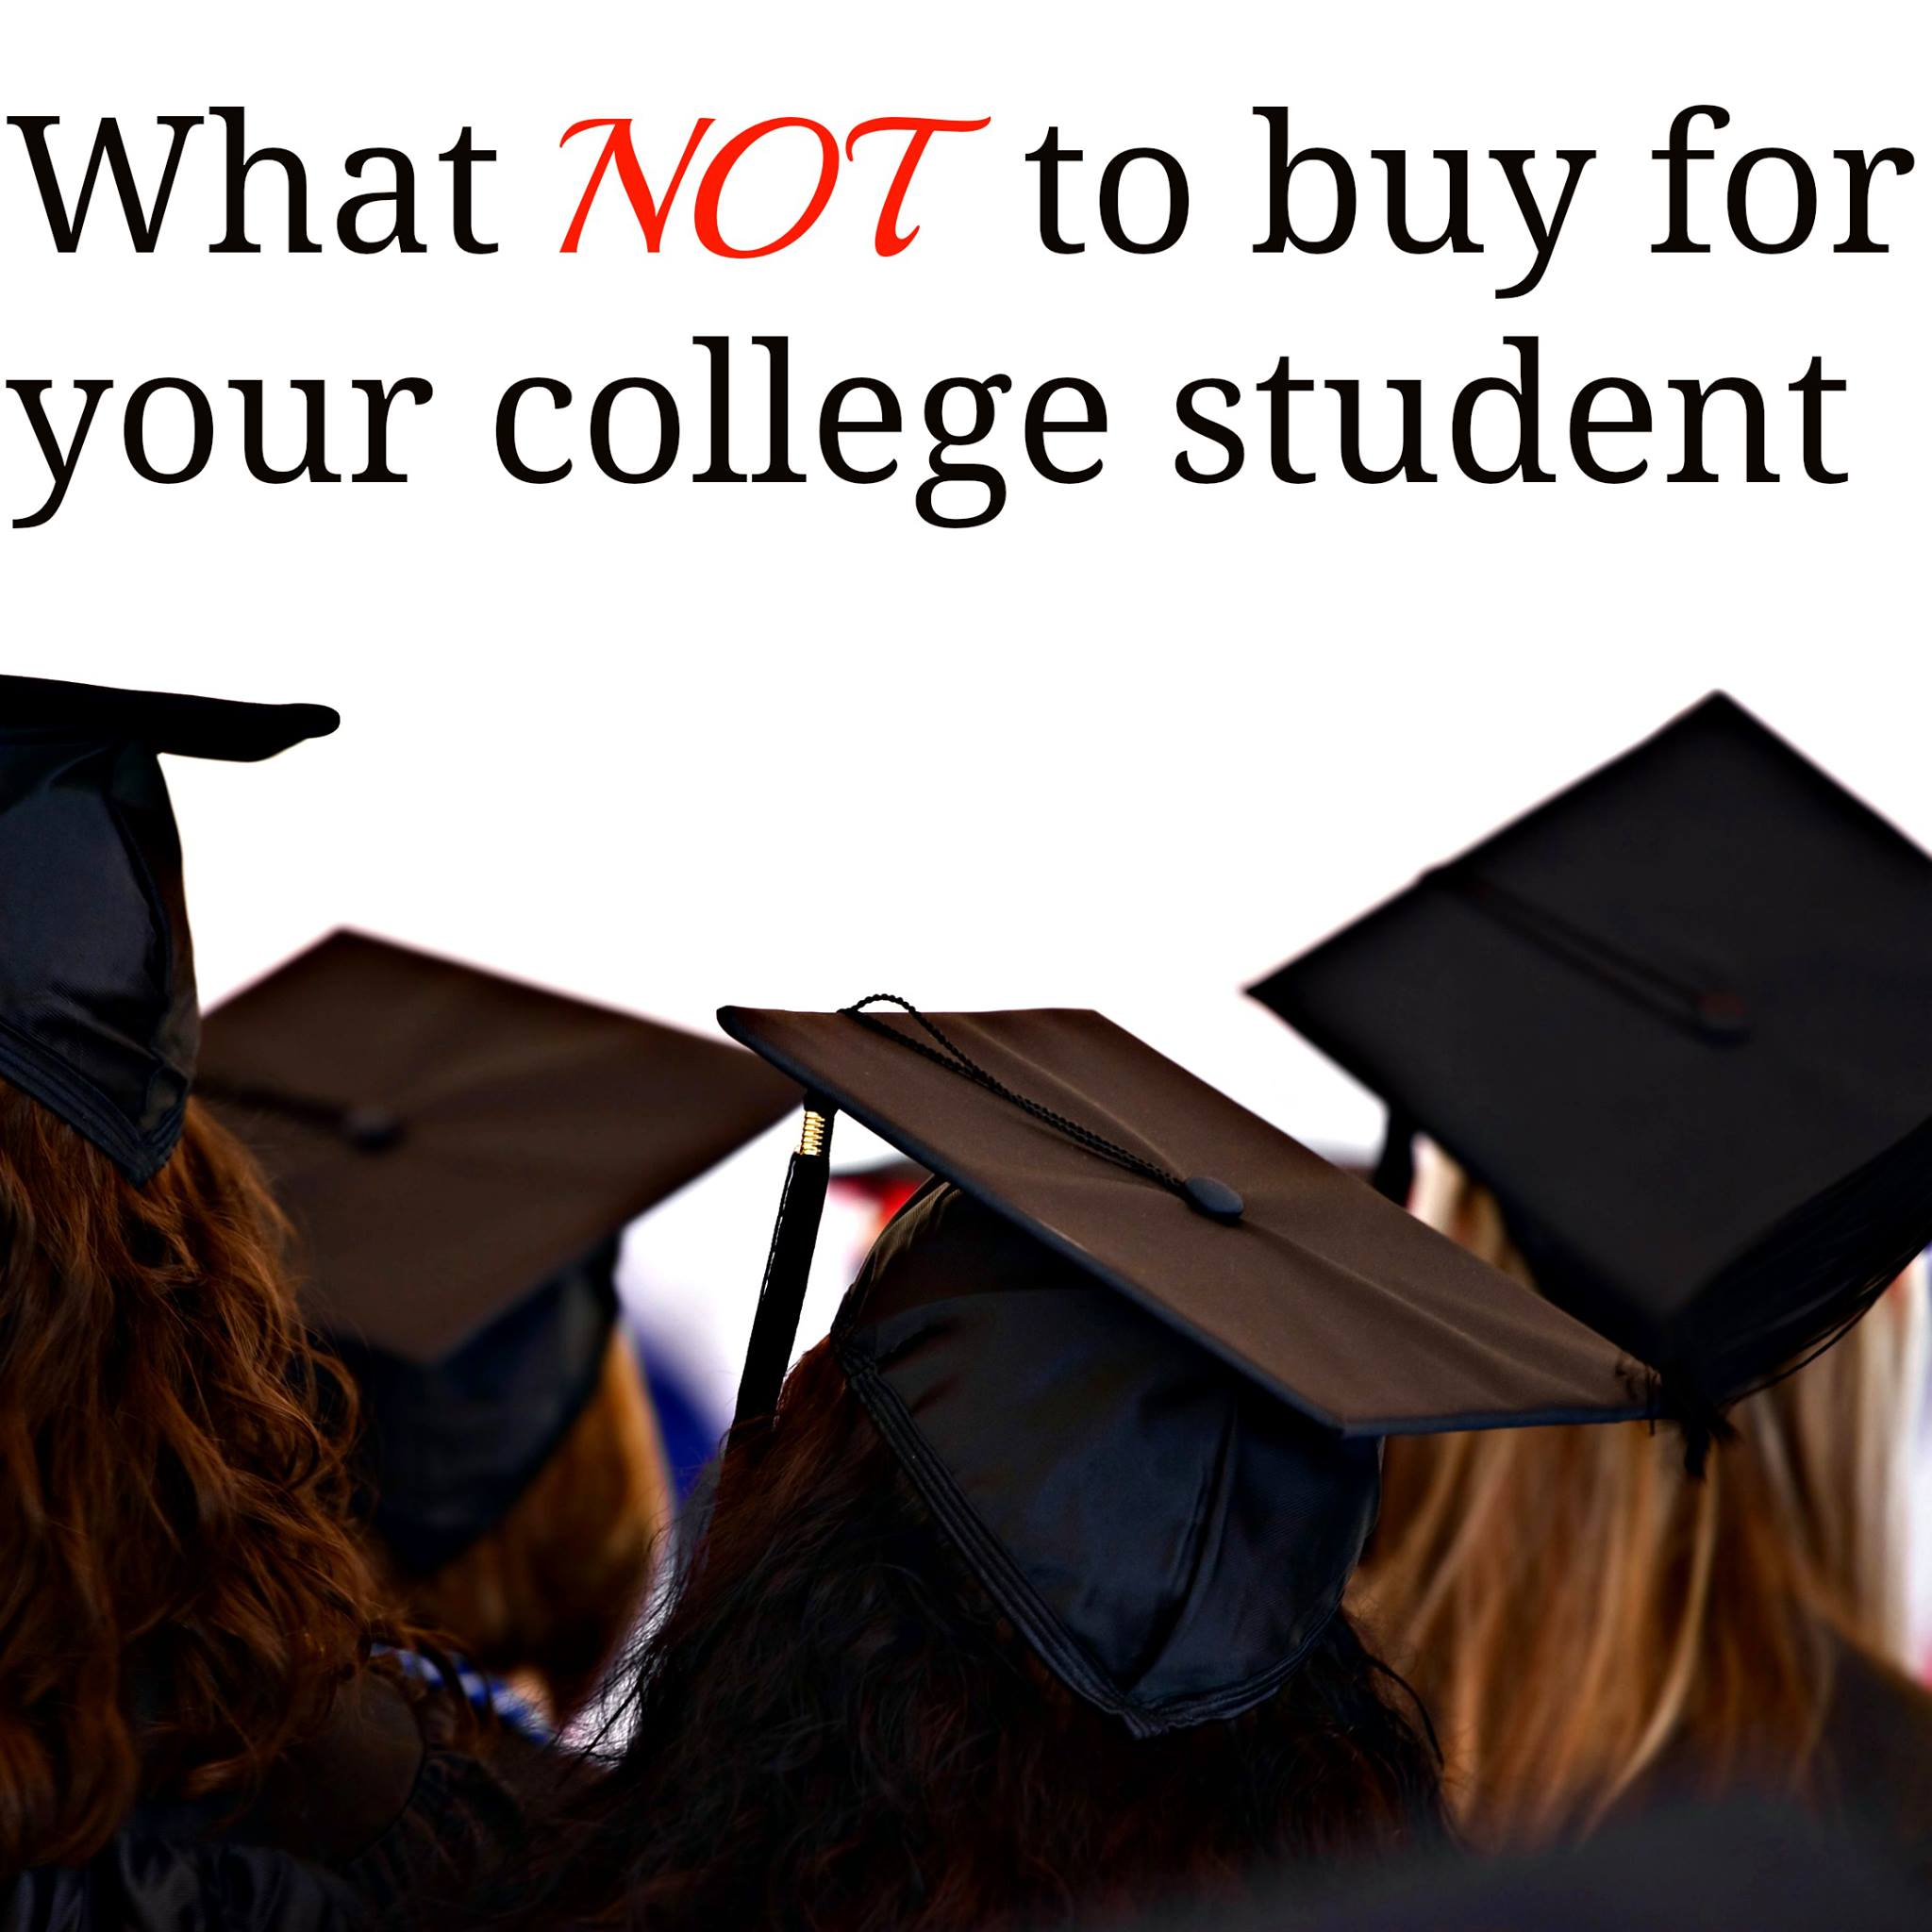 Things NOT to Buy Your College Student